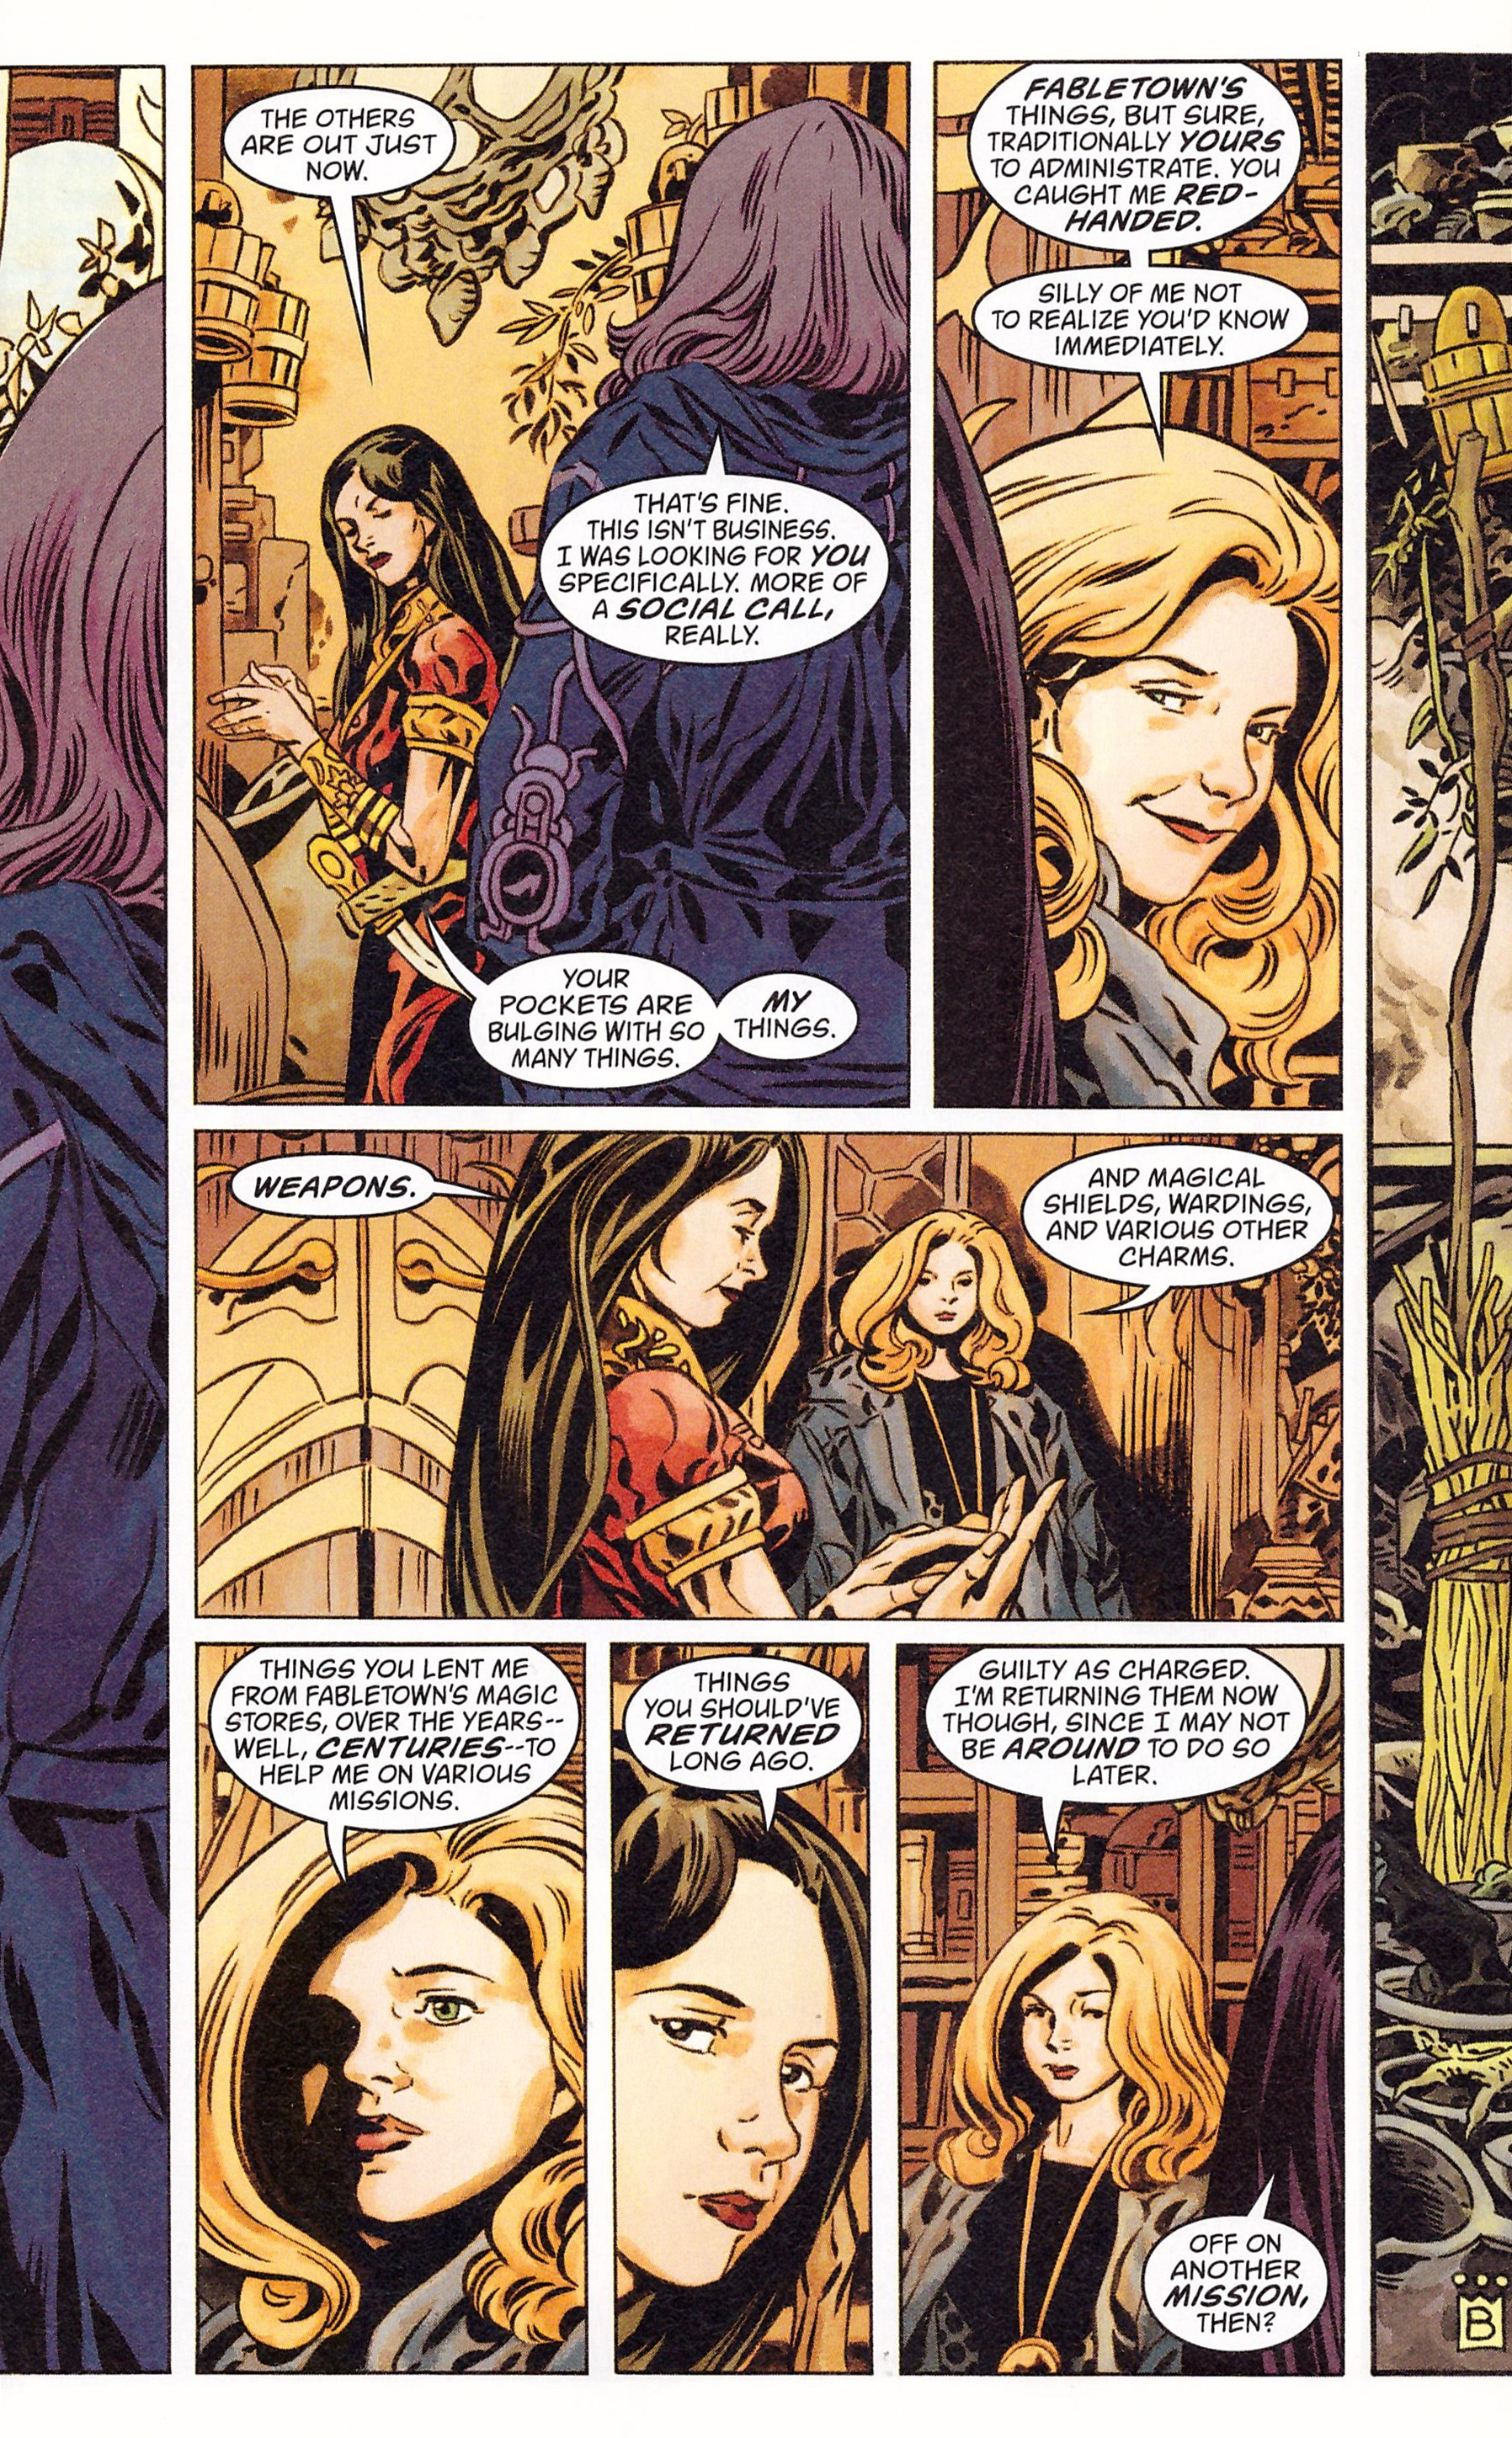 Fables The Deluxe Edition 15 review